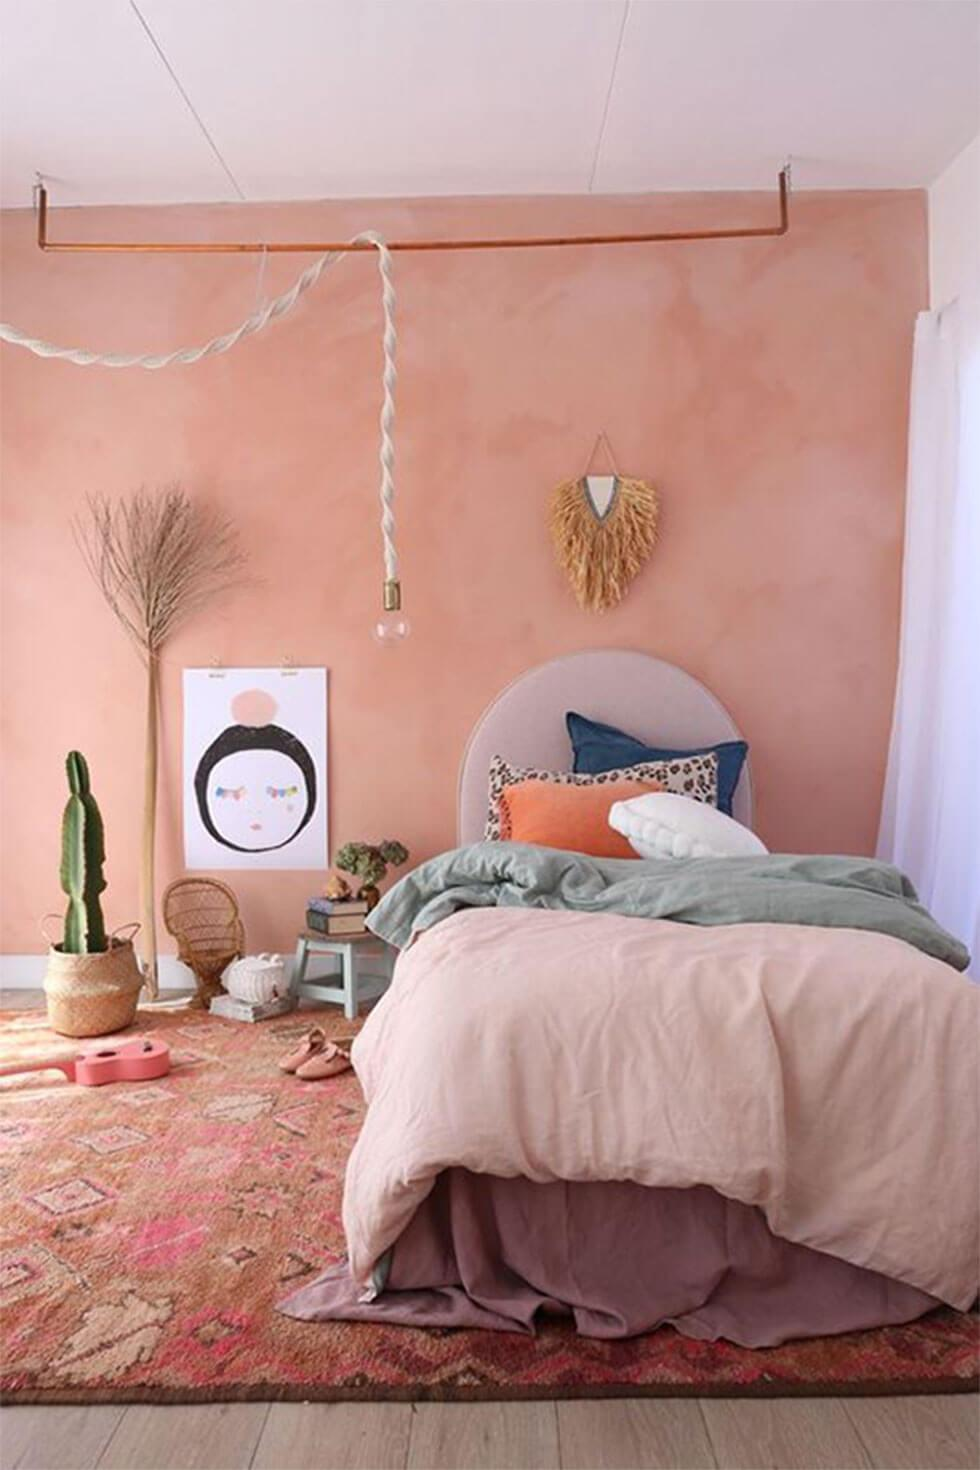 Bedroom walls painted dusky pink with bronze accents for a bohemian glam look.